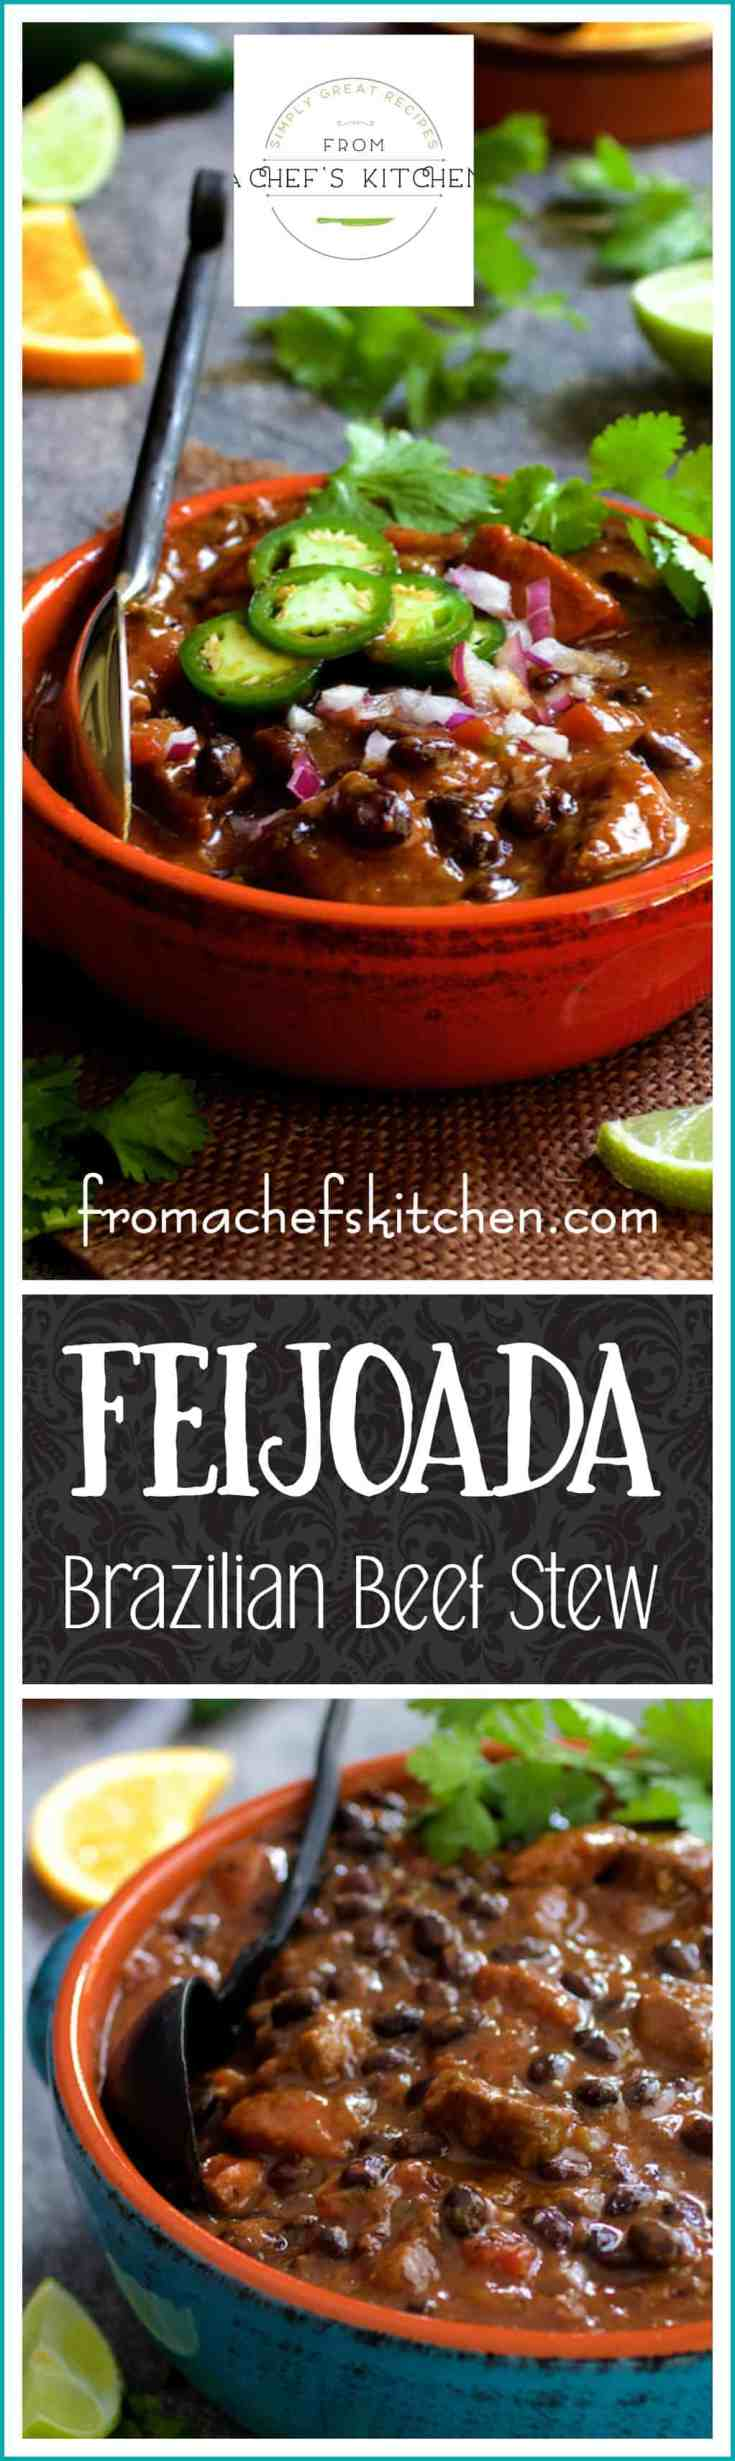 Feijoada or Brazilian Beef Stew is the national dish of Brazil.  If made traditionally, it can take a day or two to make.  A pressure cooker makes this version much faster! #beef #beefstew #feijoada #brazilianbeefstew #brazilianfood